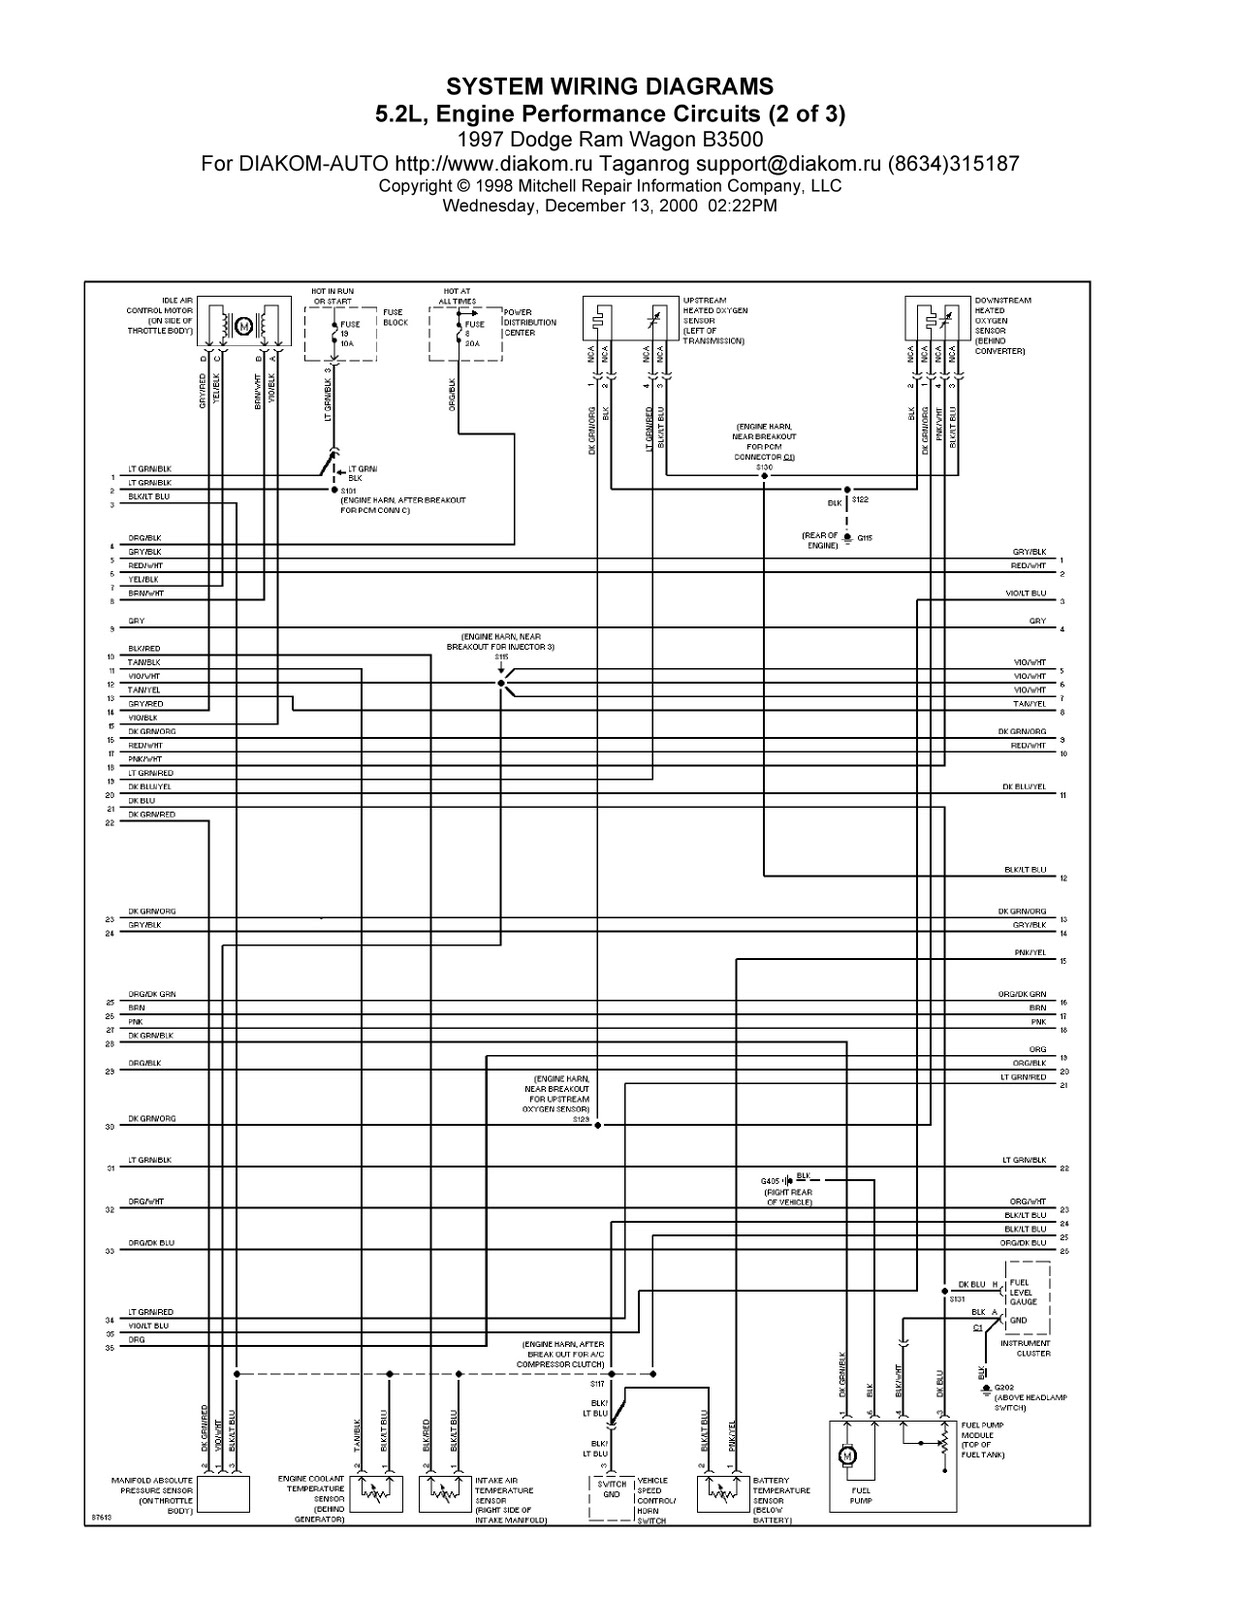 medium resolution of 1997 dodge ram wagon b3500 system wiring diagram 5 2l 1997 dodge ram wiring diagram 97